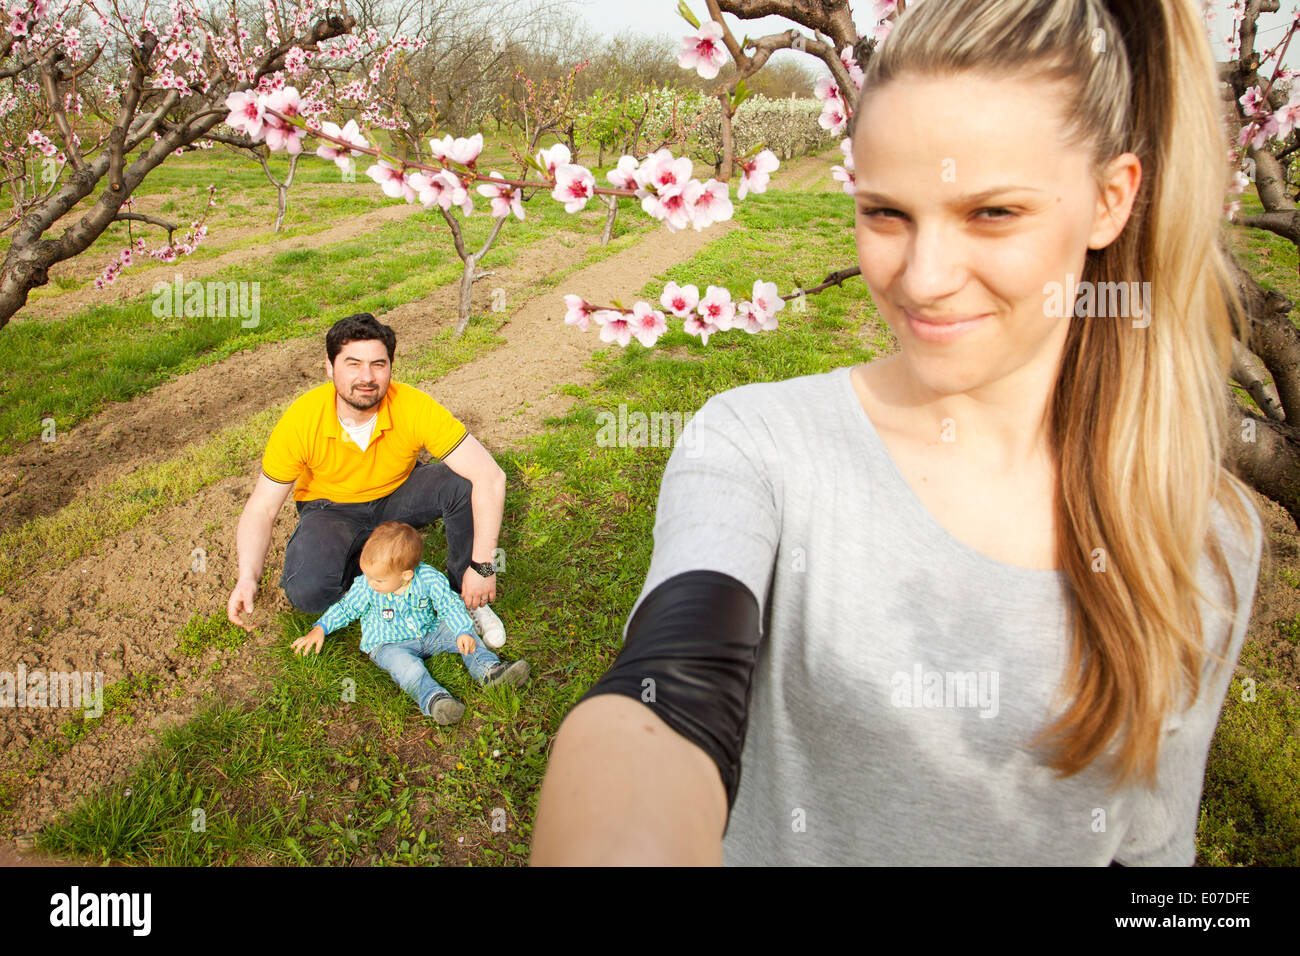 Parents with toddler boy playing by cherry trees, Austria - Stock Image